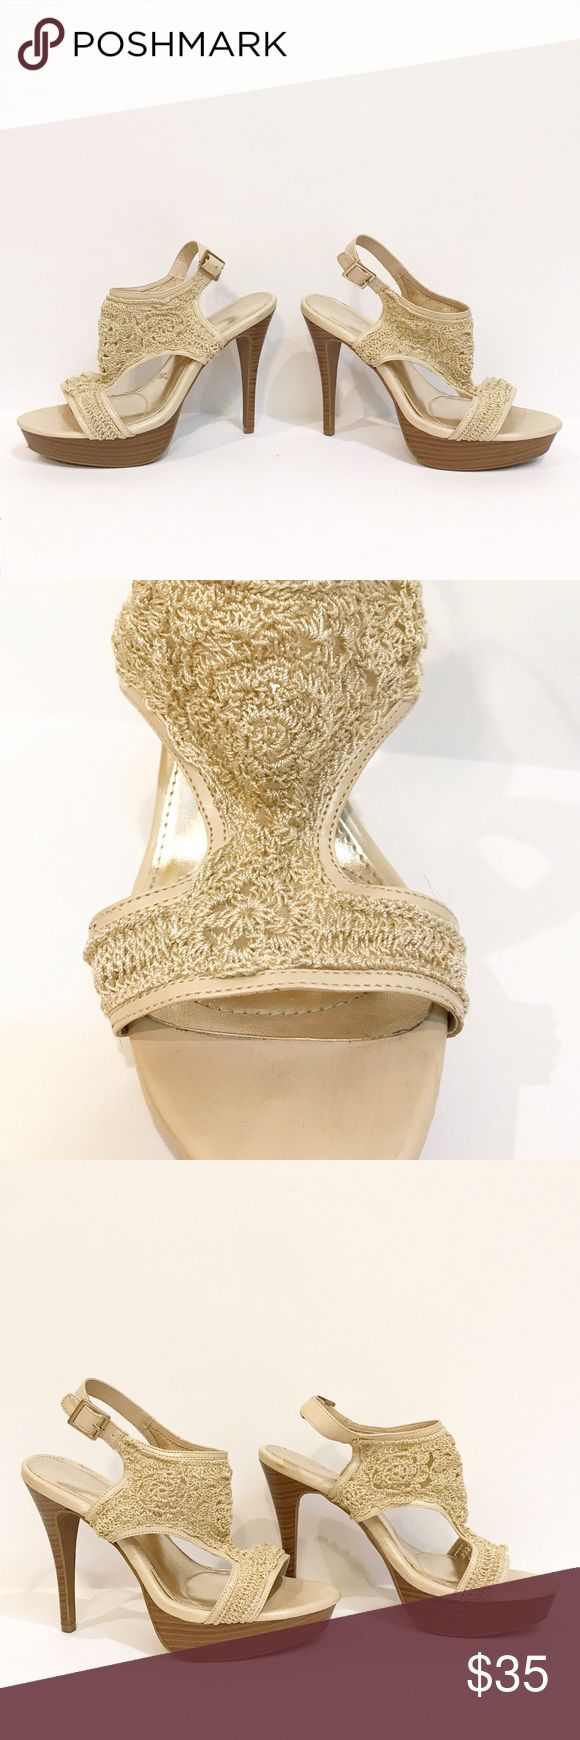 Sofia by Sofia Vergara - Jessica Crochet Heels These ivory colored heels have a crocheted upper with a buckle closure. Open toe sandal heels. Worn only a few times, see 6th photo for condition of soles.   Front Platform: 1.5 inches Heel Height: 5 inches Sofia Vergara Shoes Heels